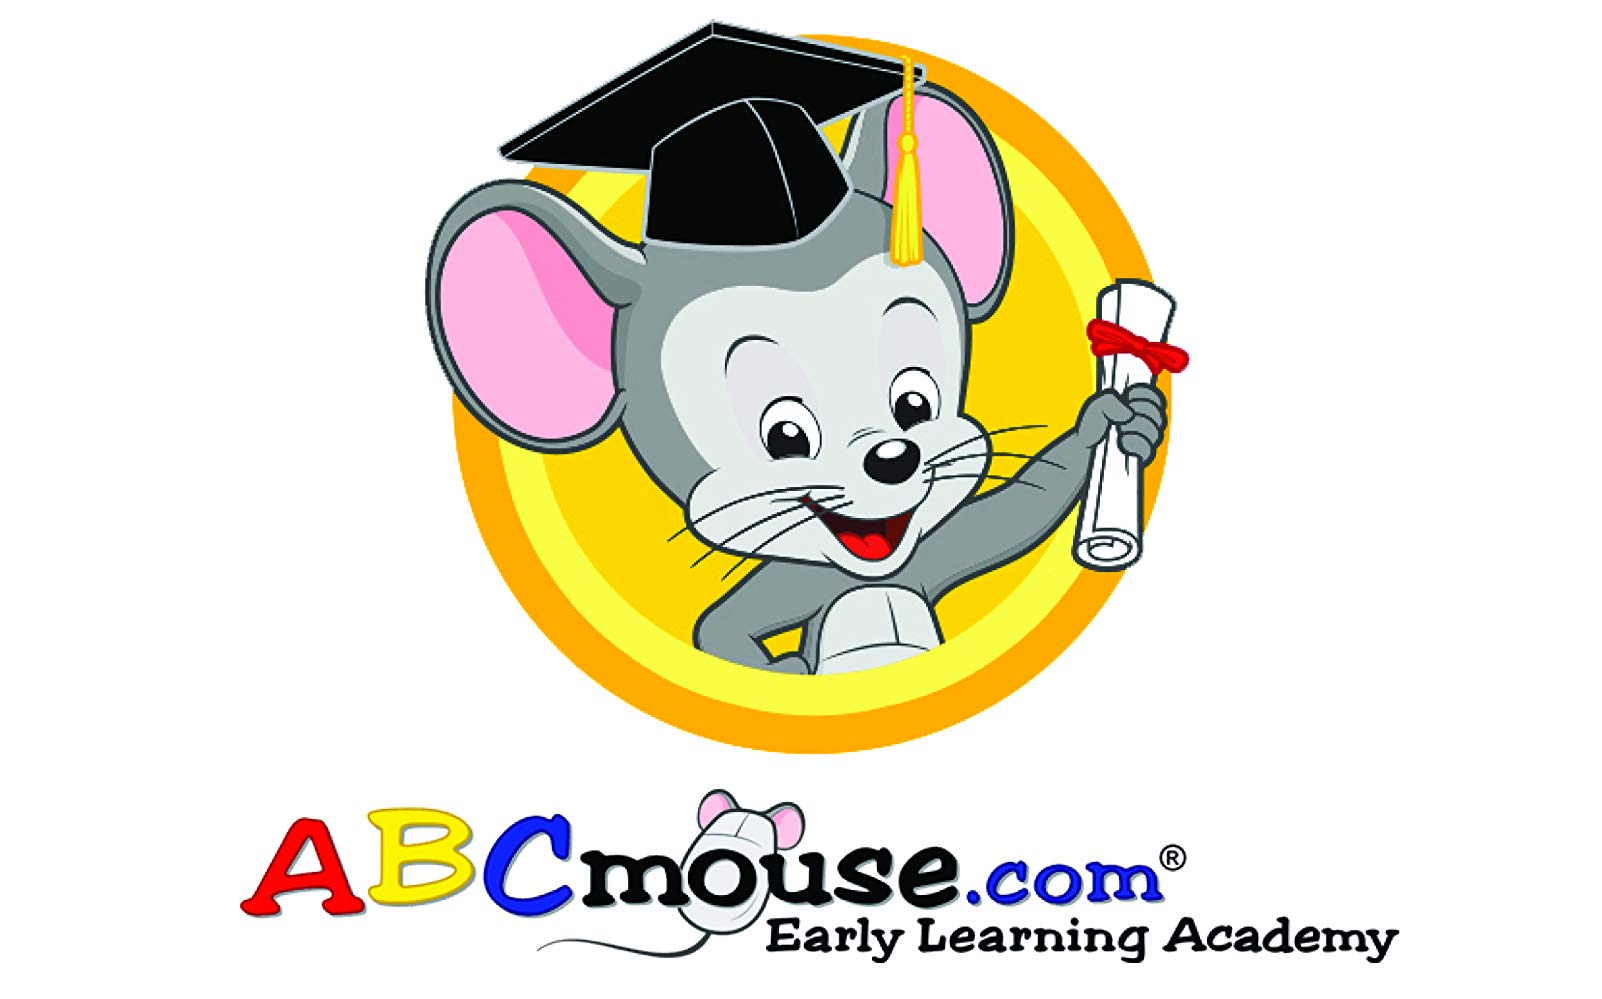 ABCmouse.com Discount for Teachers